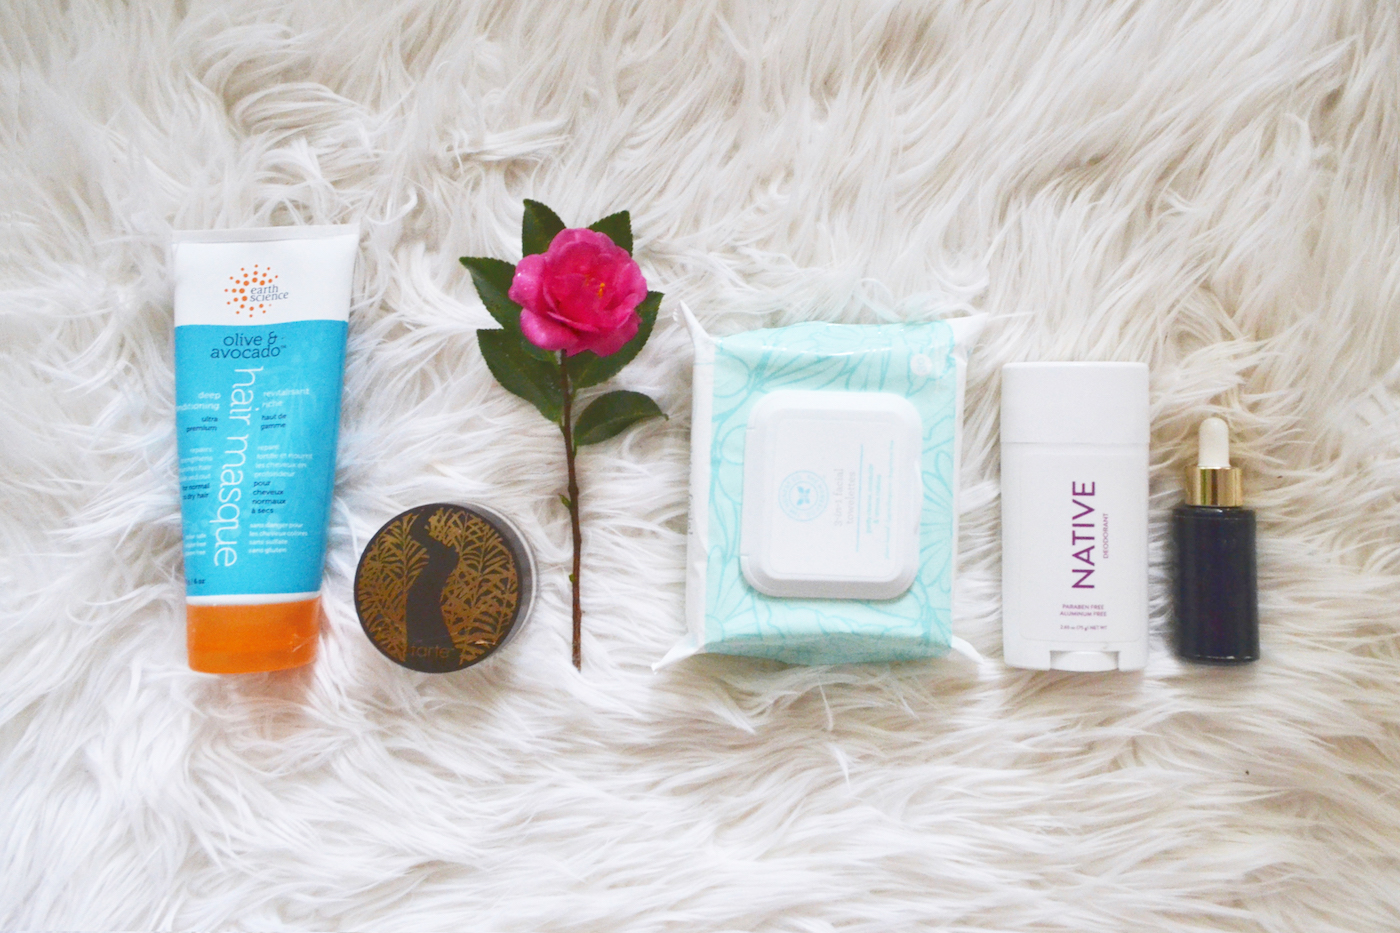 My Favorite Chemical Free Beauty Items // www.thehiveblog.com